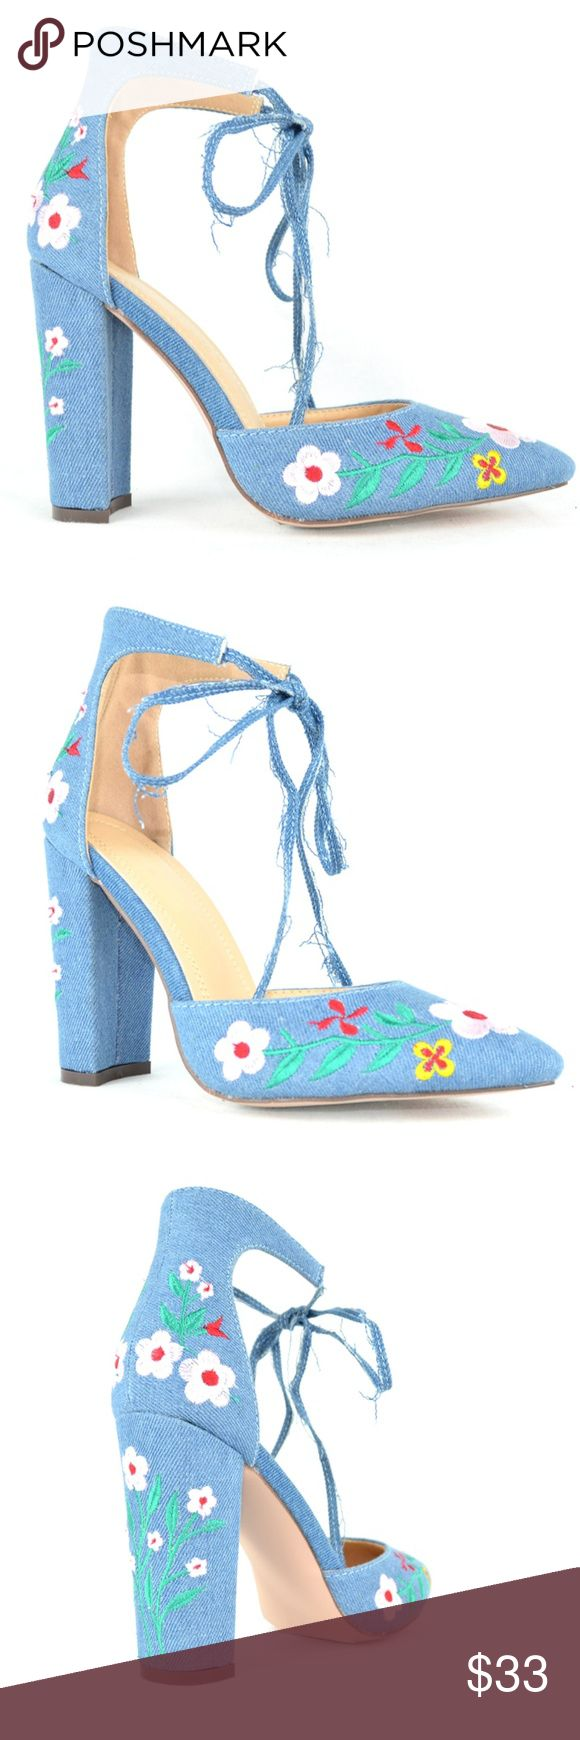 """Women's Denim Floral D'orsay Chunky Heel Pump Pointy Toe Approx.3.75"""" Heel Block Chunky Heel Women's D'orsay Pump Ankle Tie Closure Very Comfortable  Faux Suede Imported Chase & Chloe Holland-3 Fit True to U.S Size. Chase & Chloe Shoes Heels"""